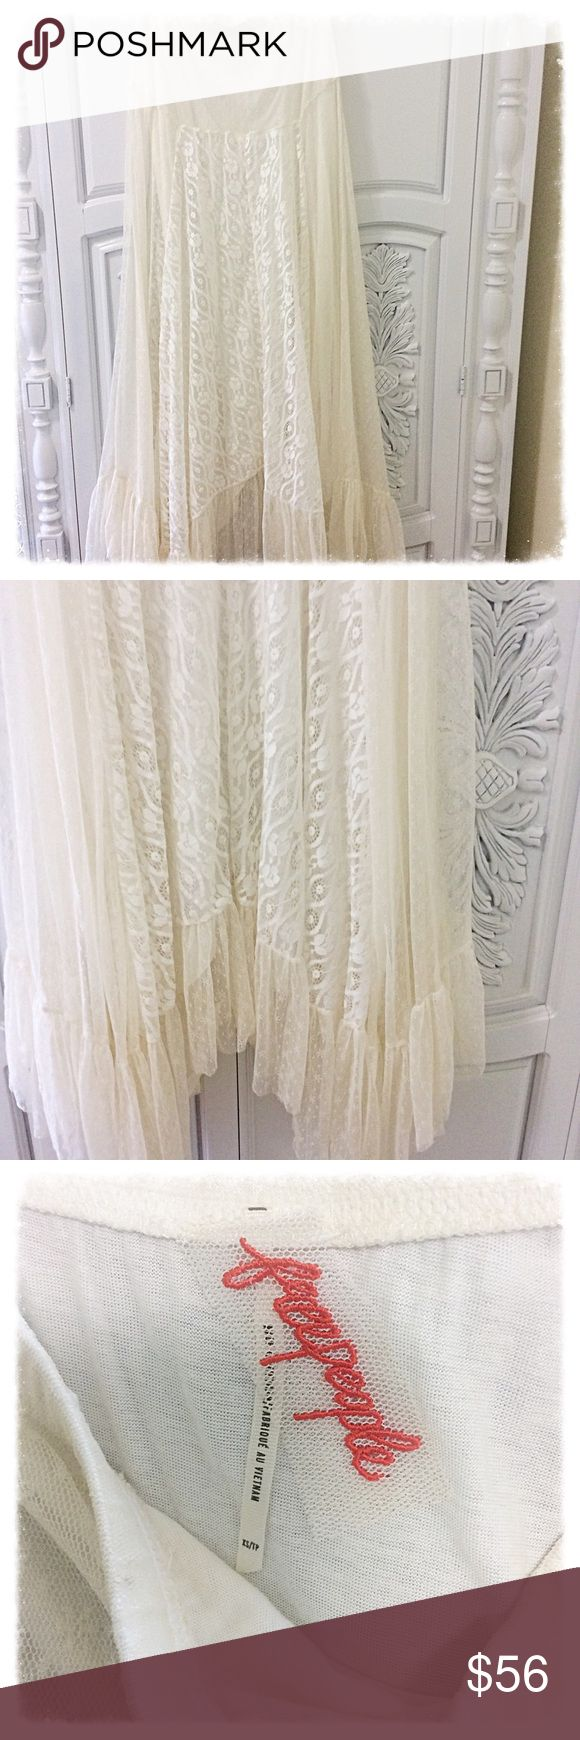 Free People Lace maxi skirt Ivory lace Free People maxi skirt with lining underneath. Elastic waist and very flows so can definitely fit a SMALL as well! looks absolutely beautiful as a dress as well! (Shown as dress in last pic) Free People Skirts Maxi